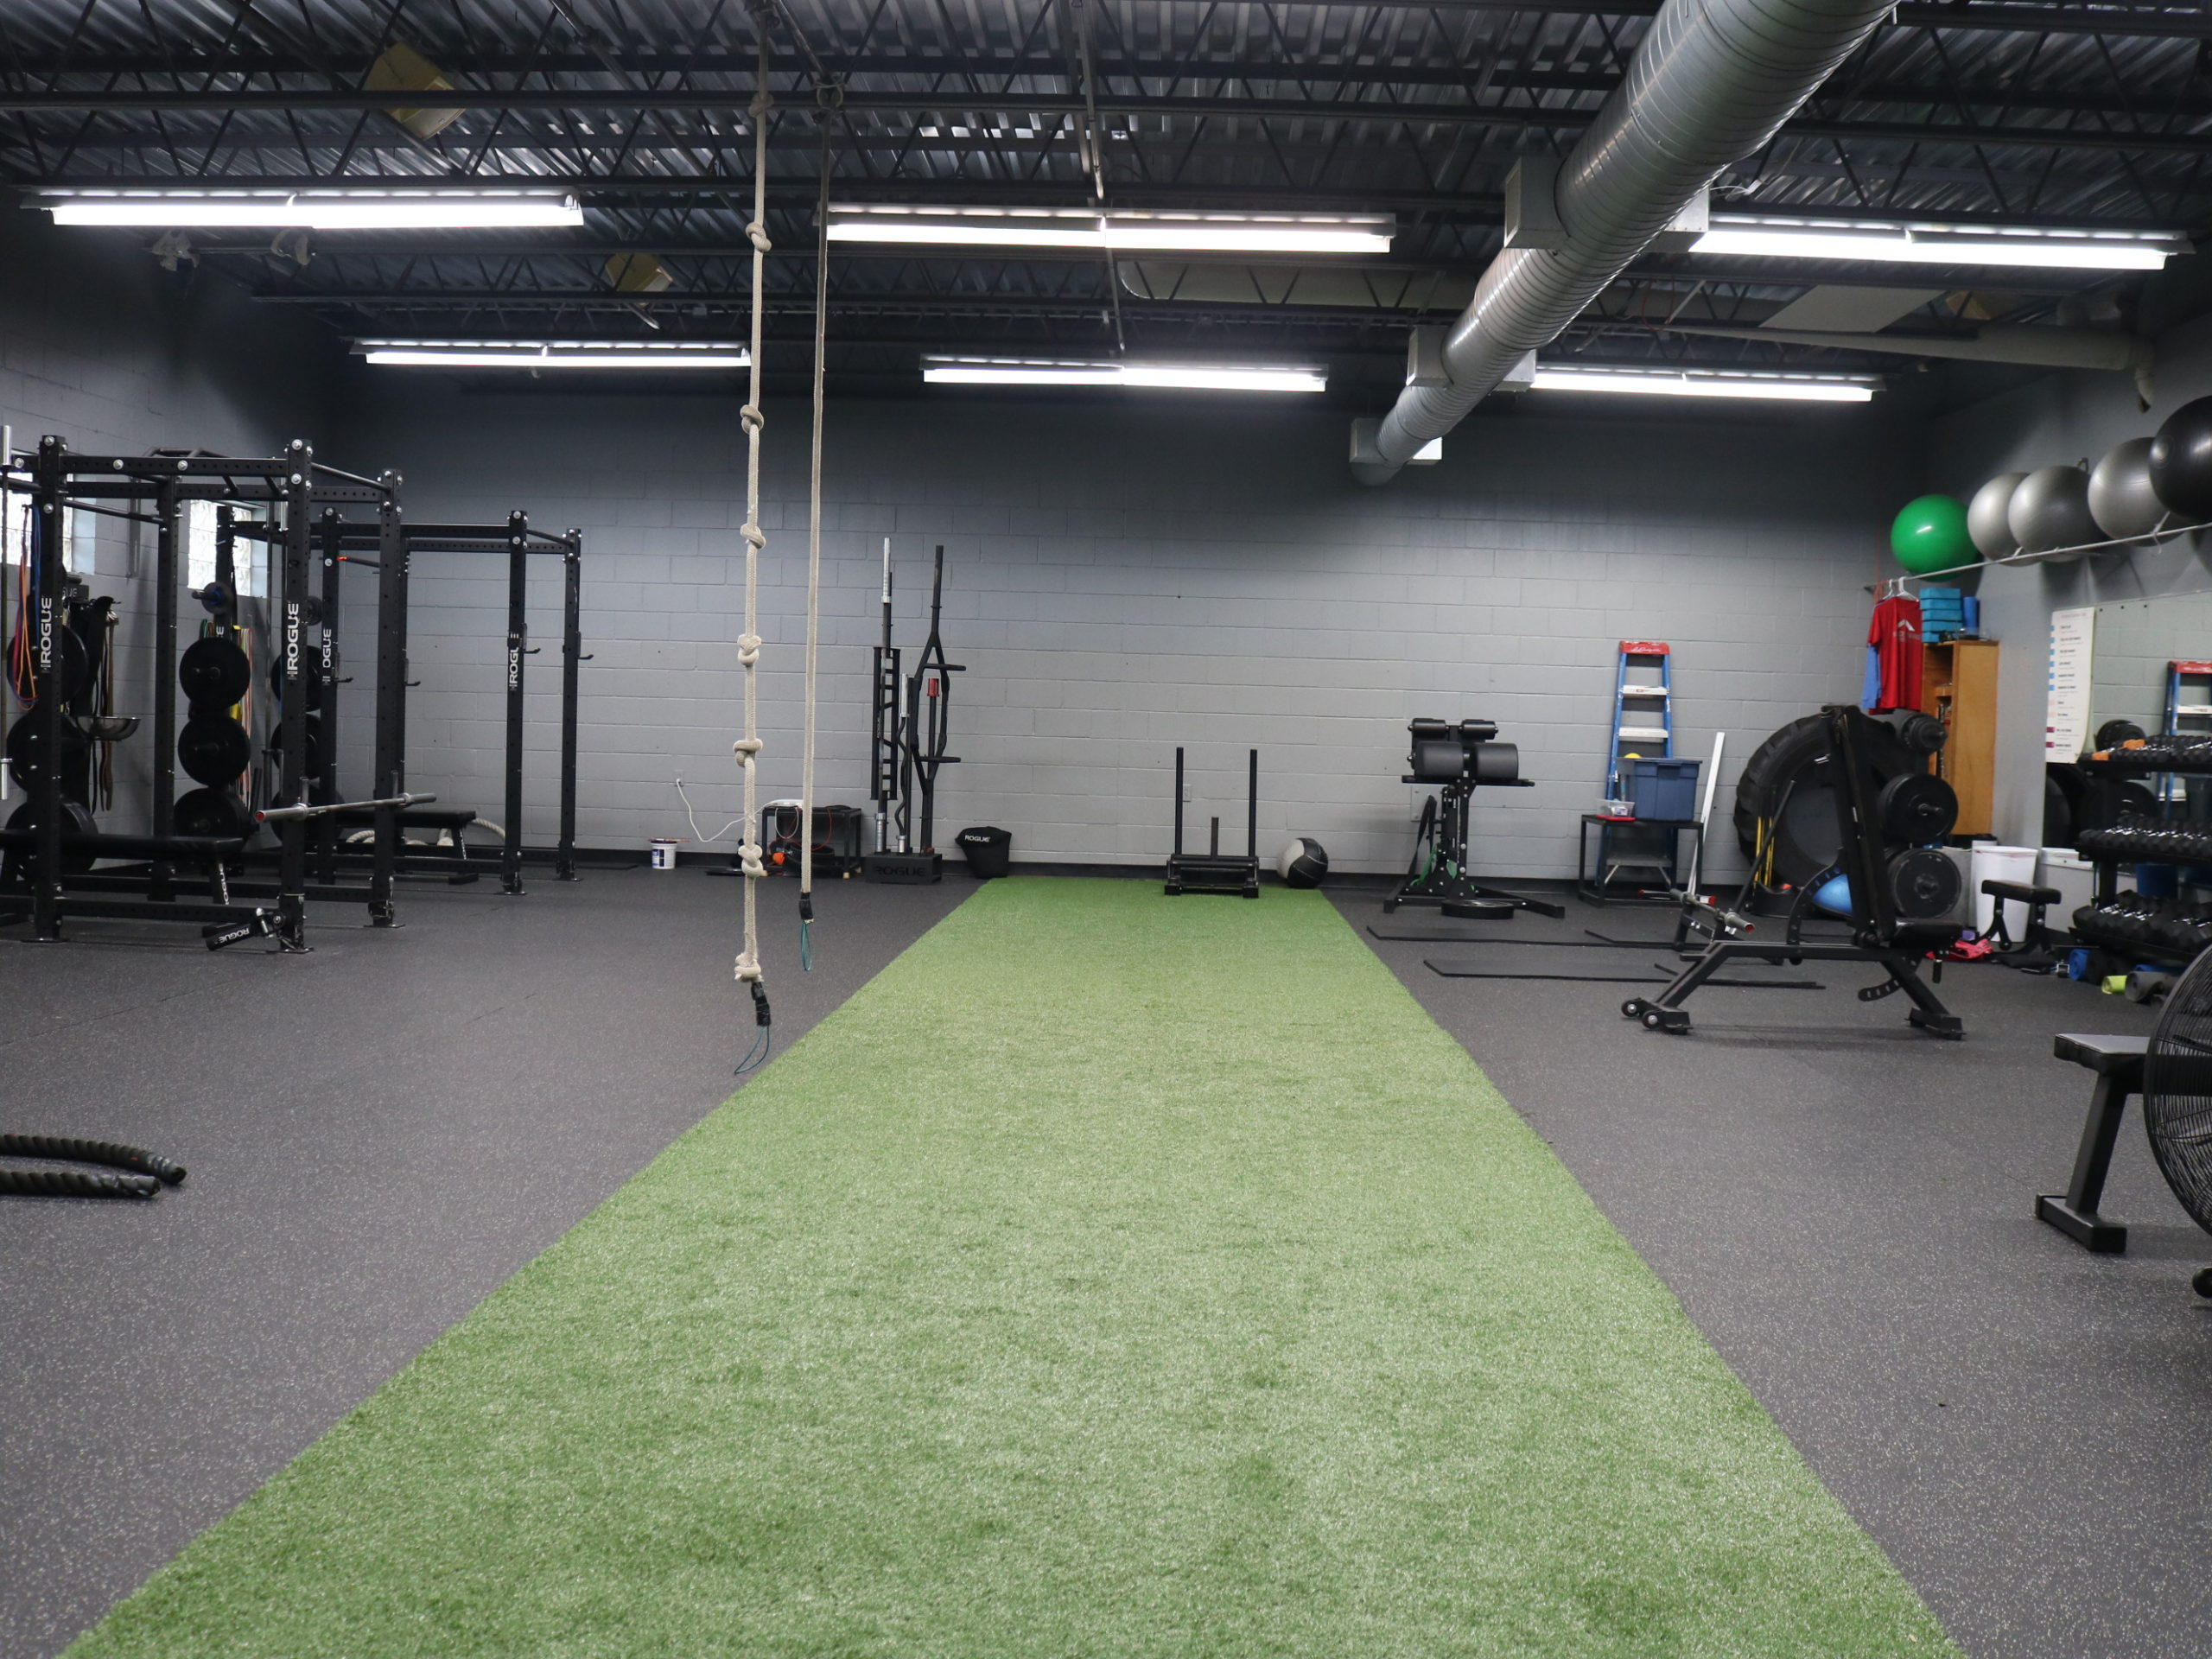 Wallace Fitness Center 24 Hour Open Gym